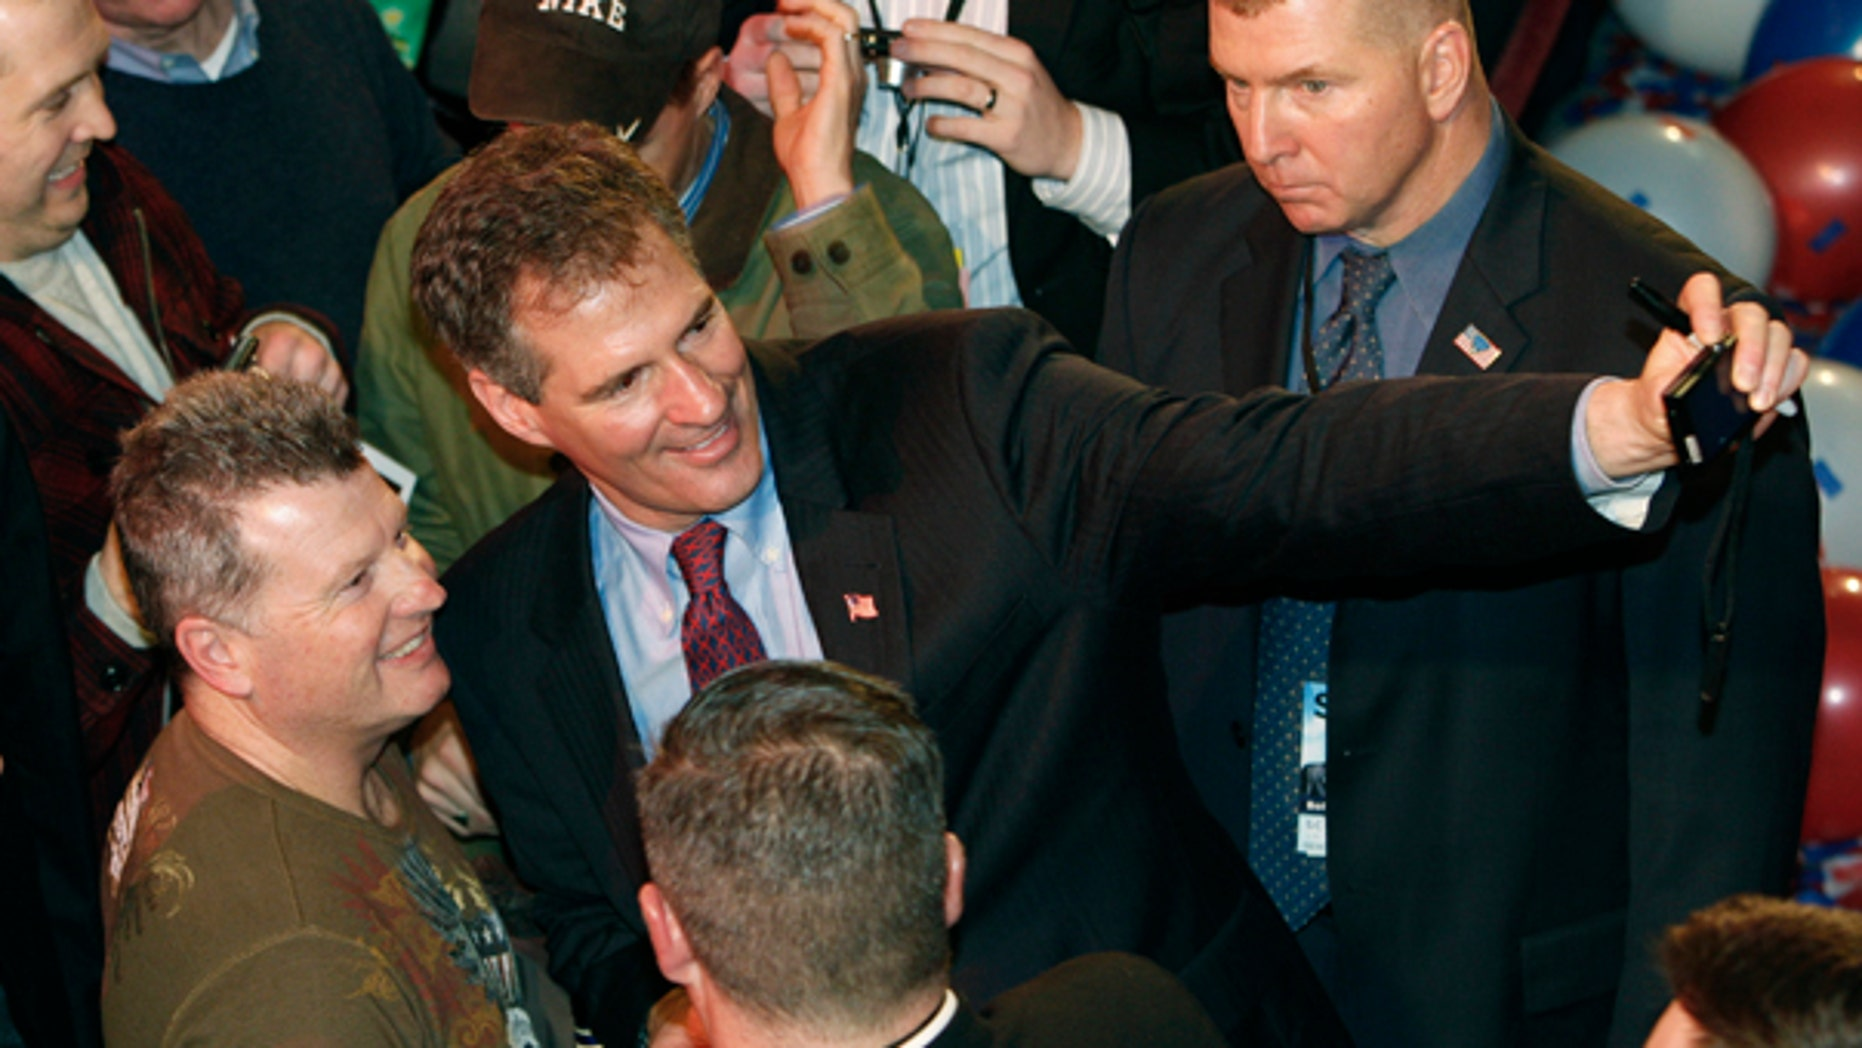 Tuesday: U.S. Senator-Elect Scott Brown takes a photo of himself and a supporter at his victory party after winning the special election to fill the seat left vacant by the death of Massachusetts Sen. Edward Kennedy. (AP Photo)